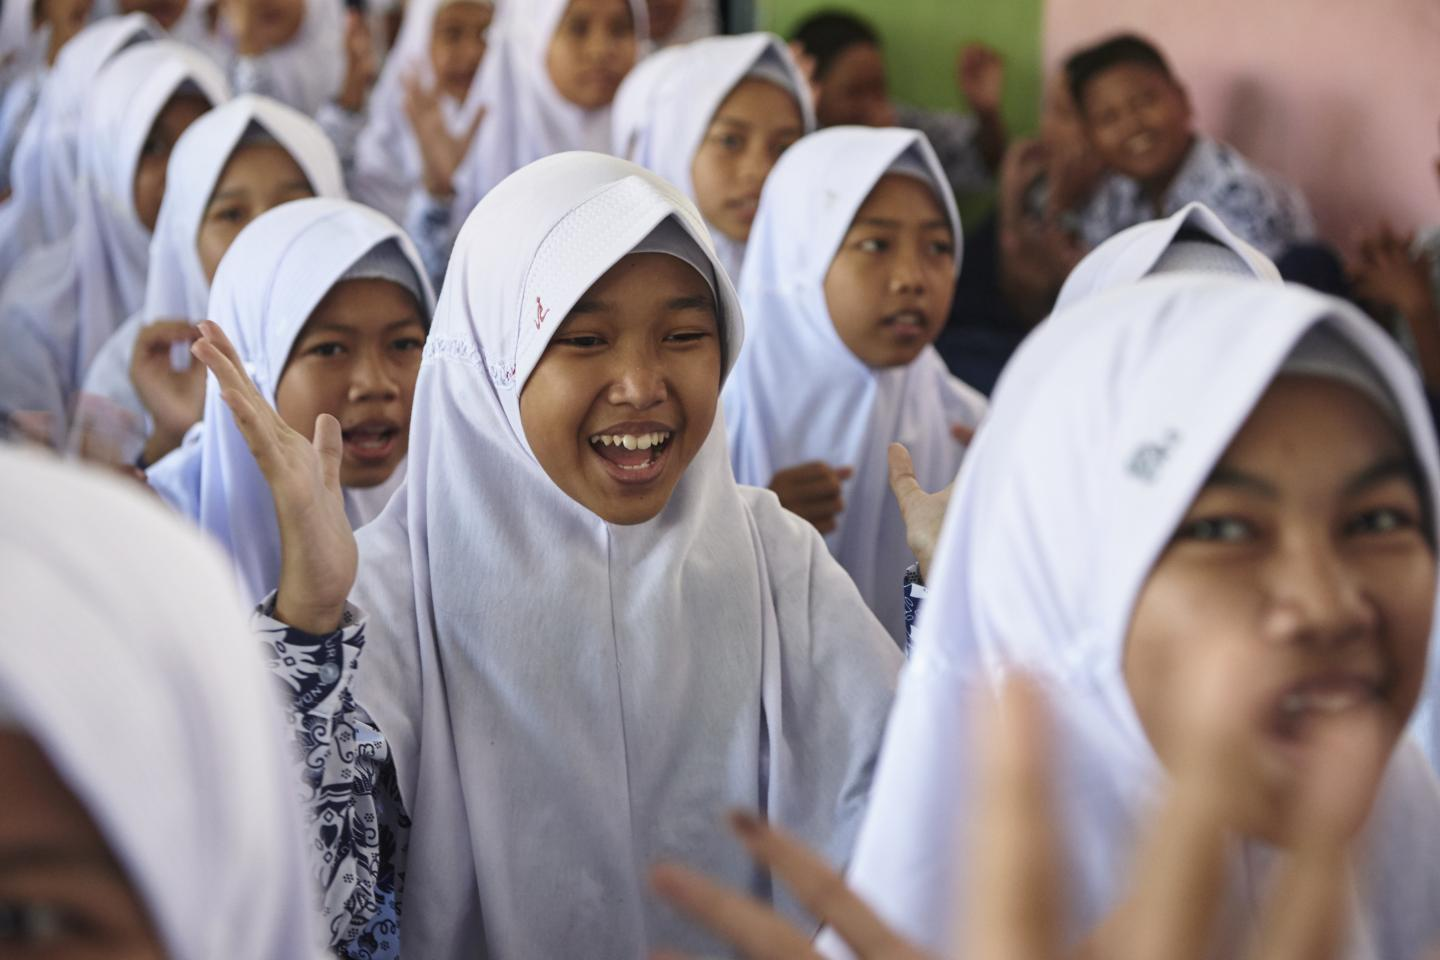 Girls take part in an anti-bullying programme at school in Sulawesi, Indonesia